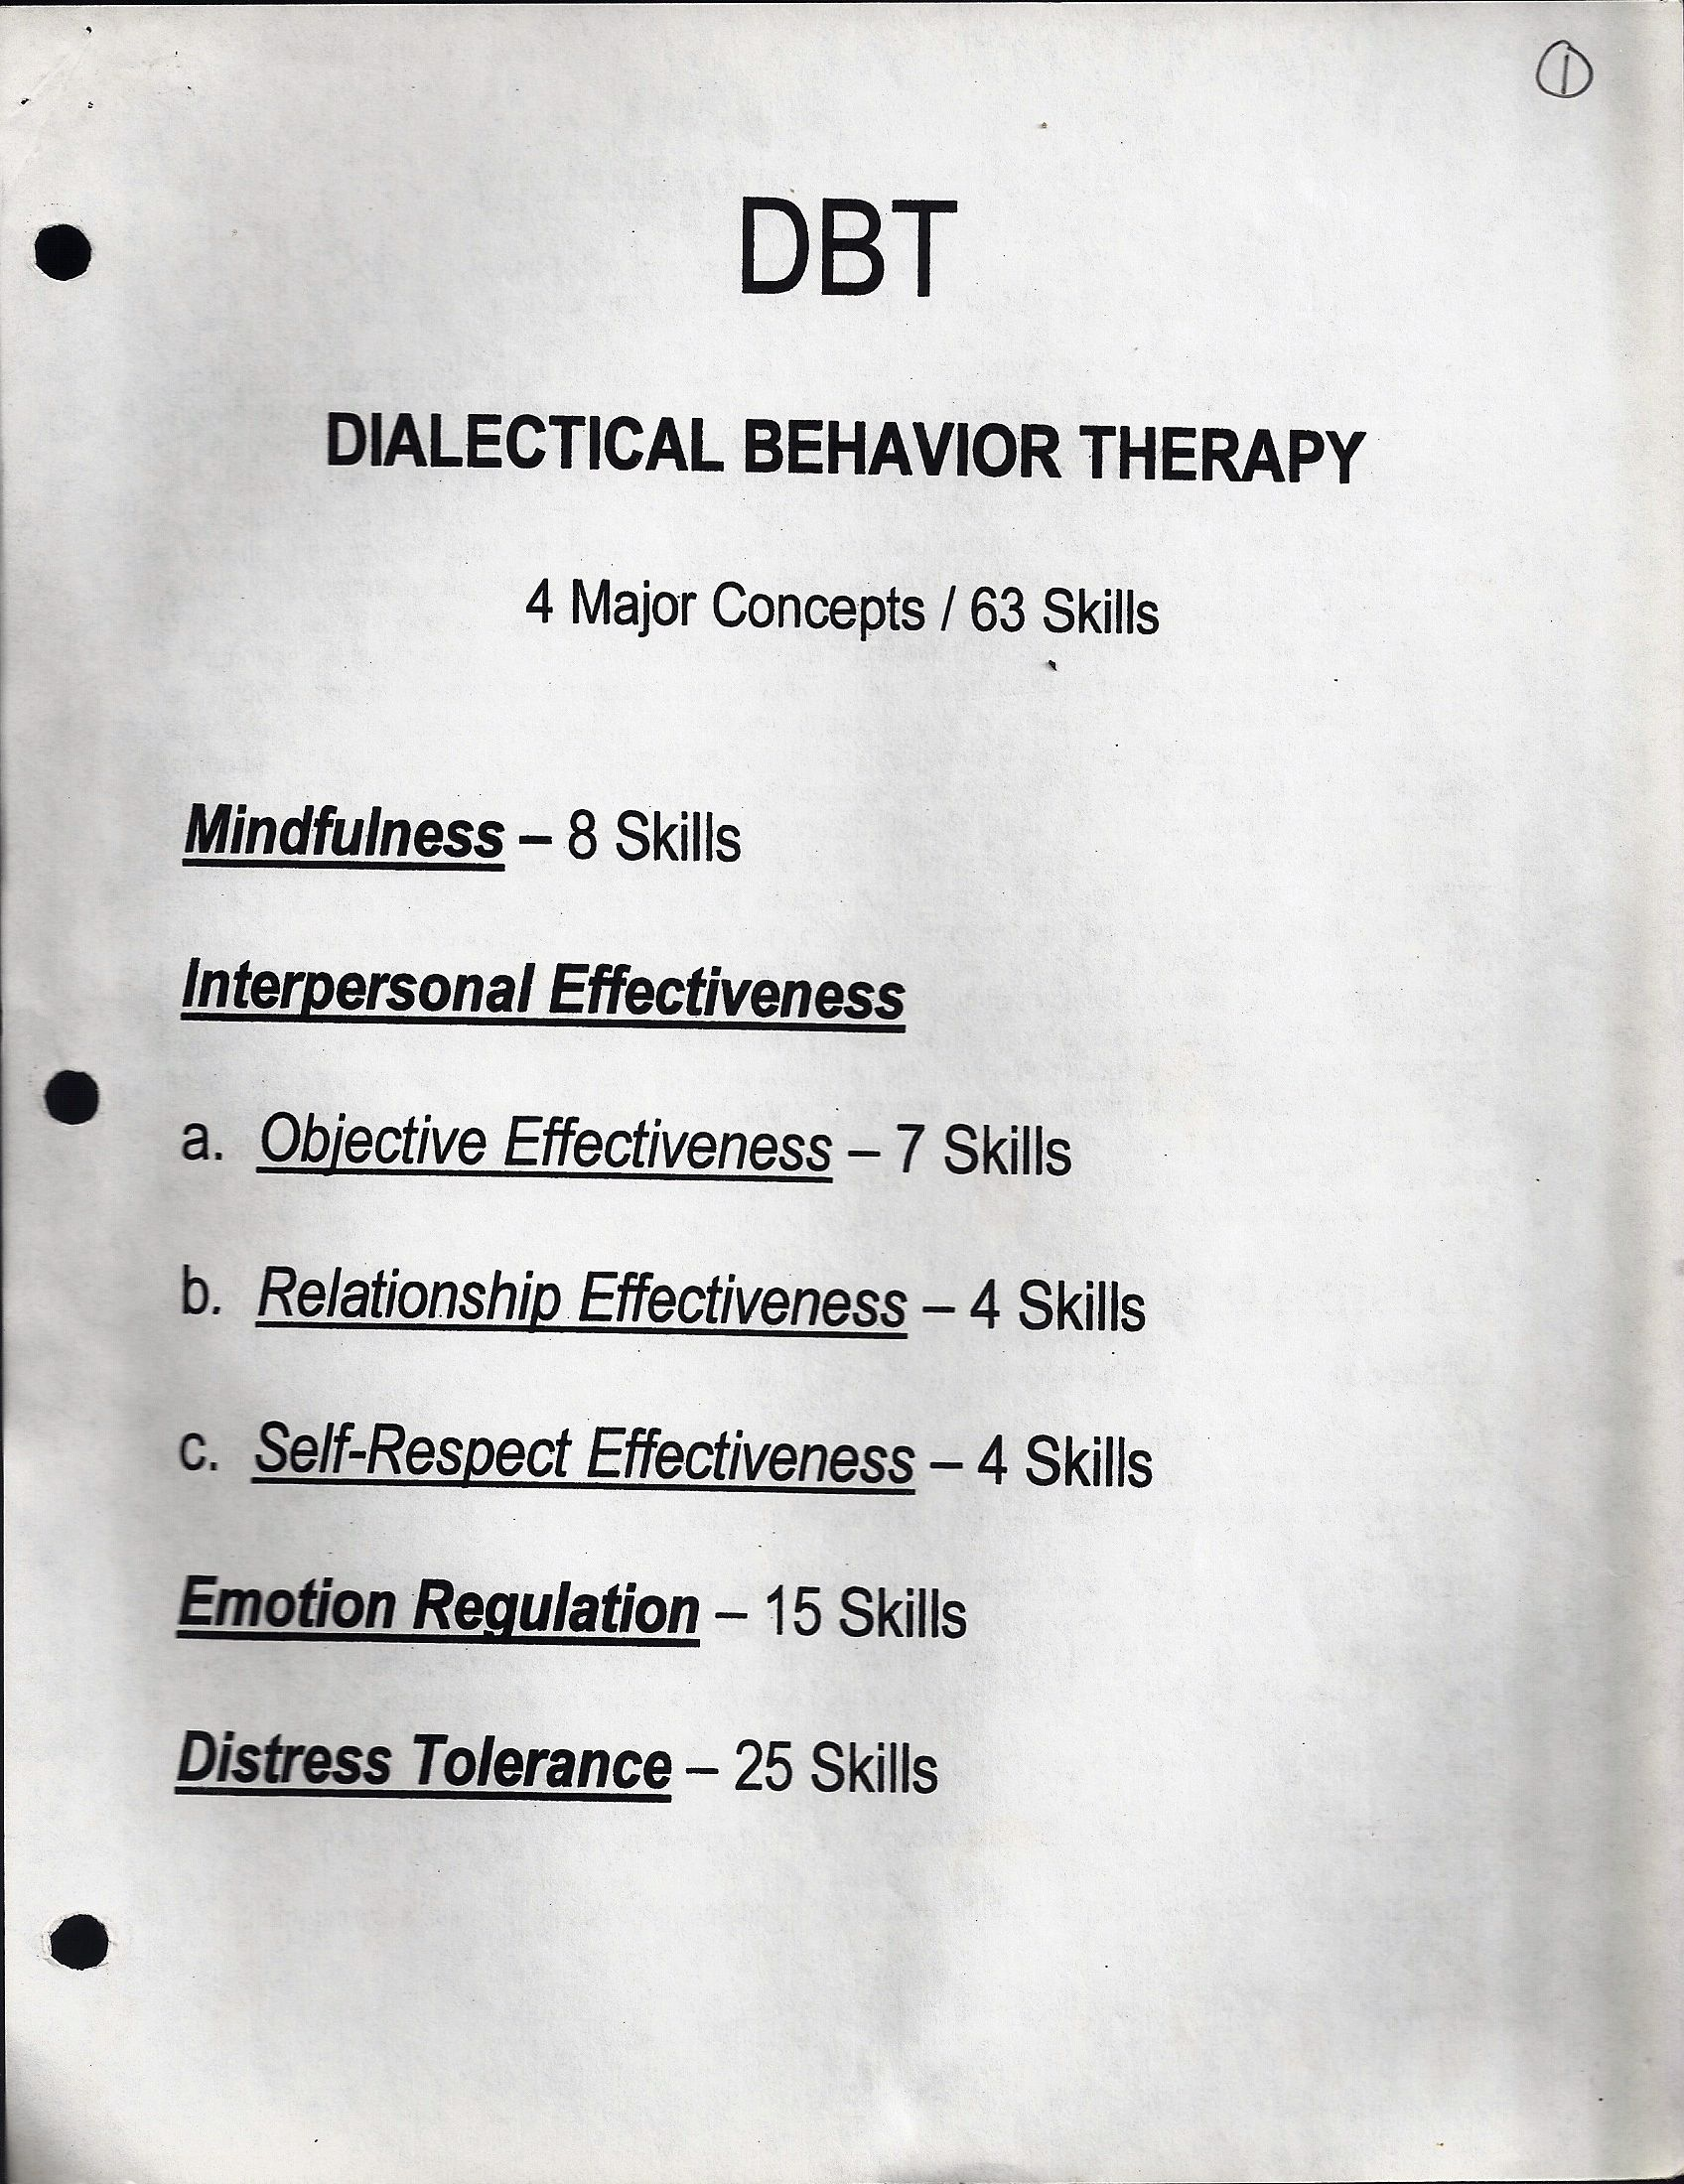 DBT. 4 Major Concepts. 63 Skills. Page 1 of 10